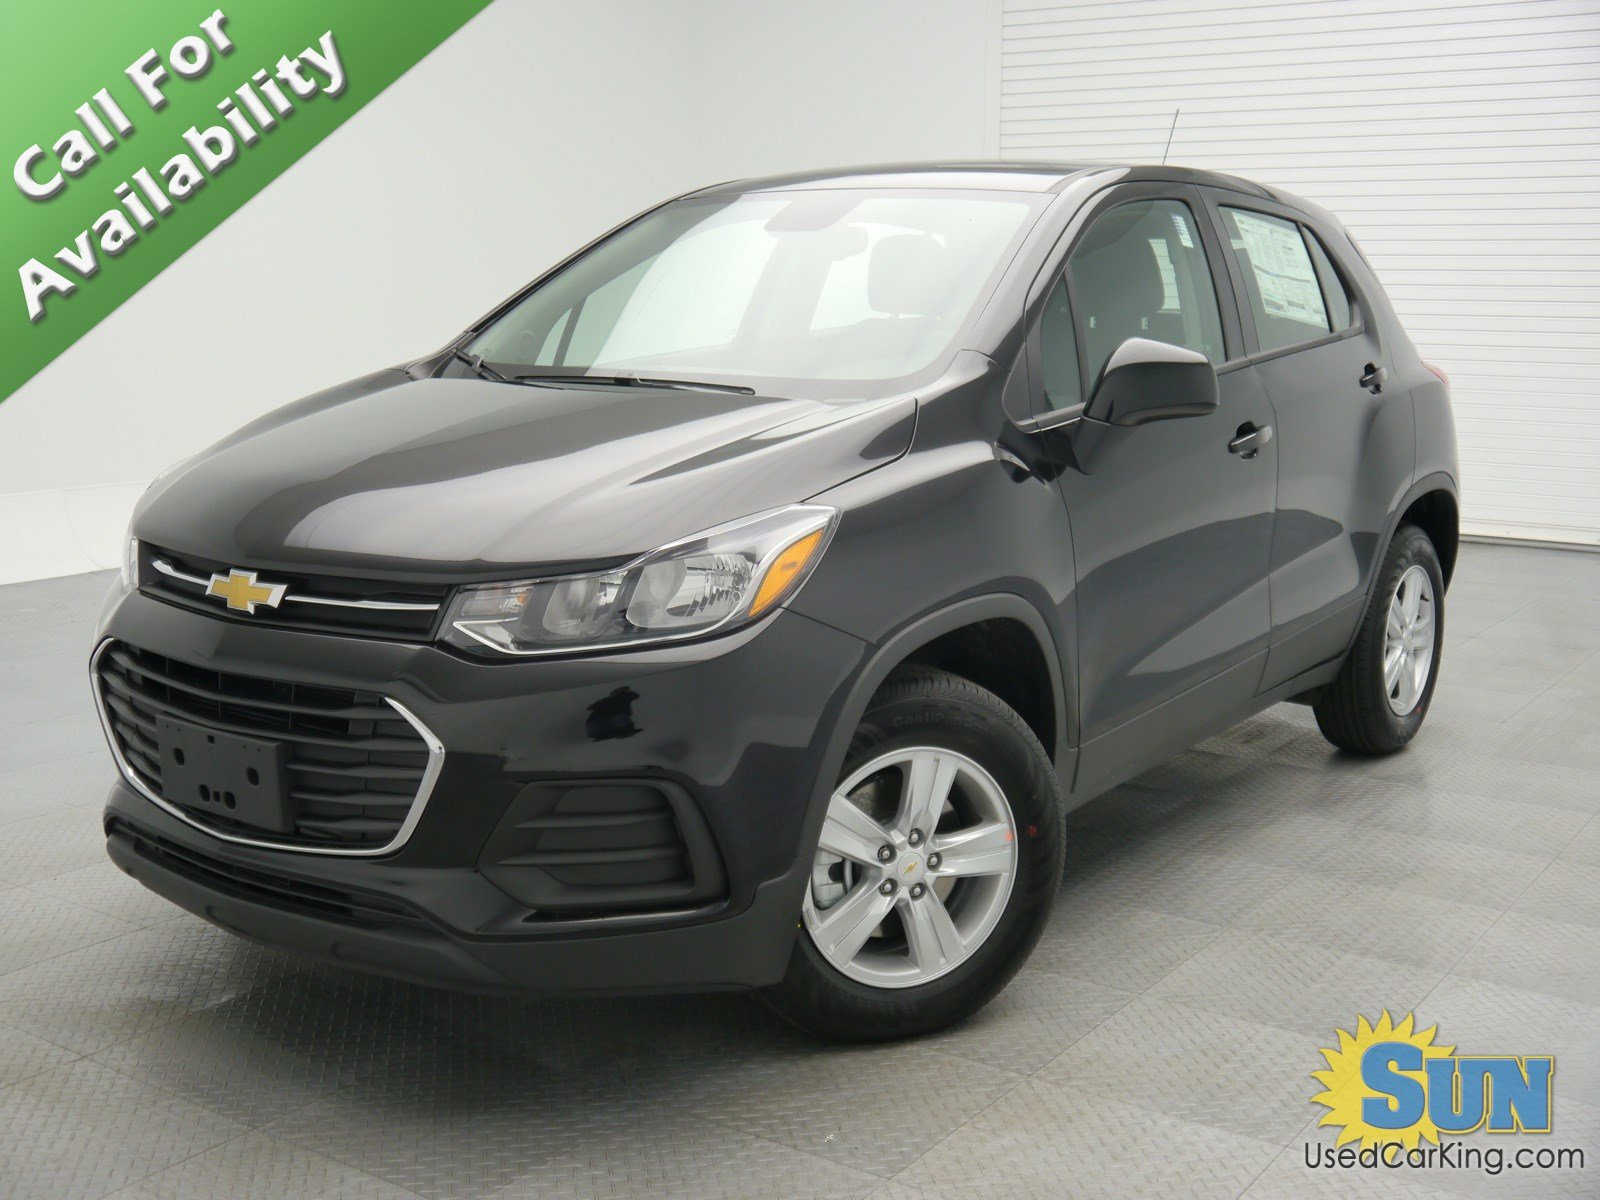 new 2017 chevrolet trax ls awd sport utility in chittenango nt70609 sun chevrolet. Black Bedroom Furniture Sets. Home Design Ideas